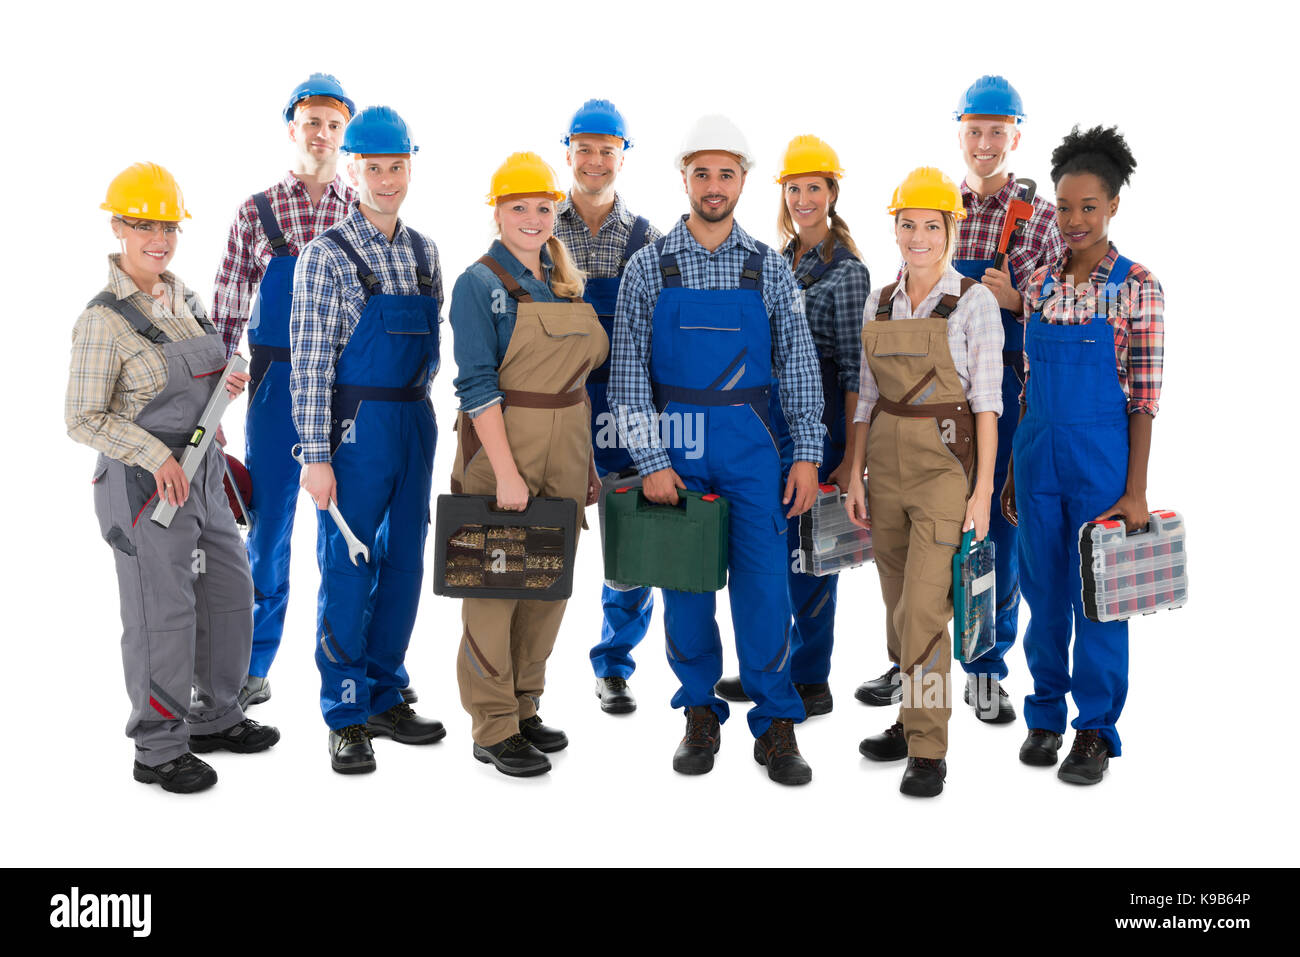 Full length portrait of confident carpenters carrying toolboxes against white background Stock Photo